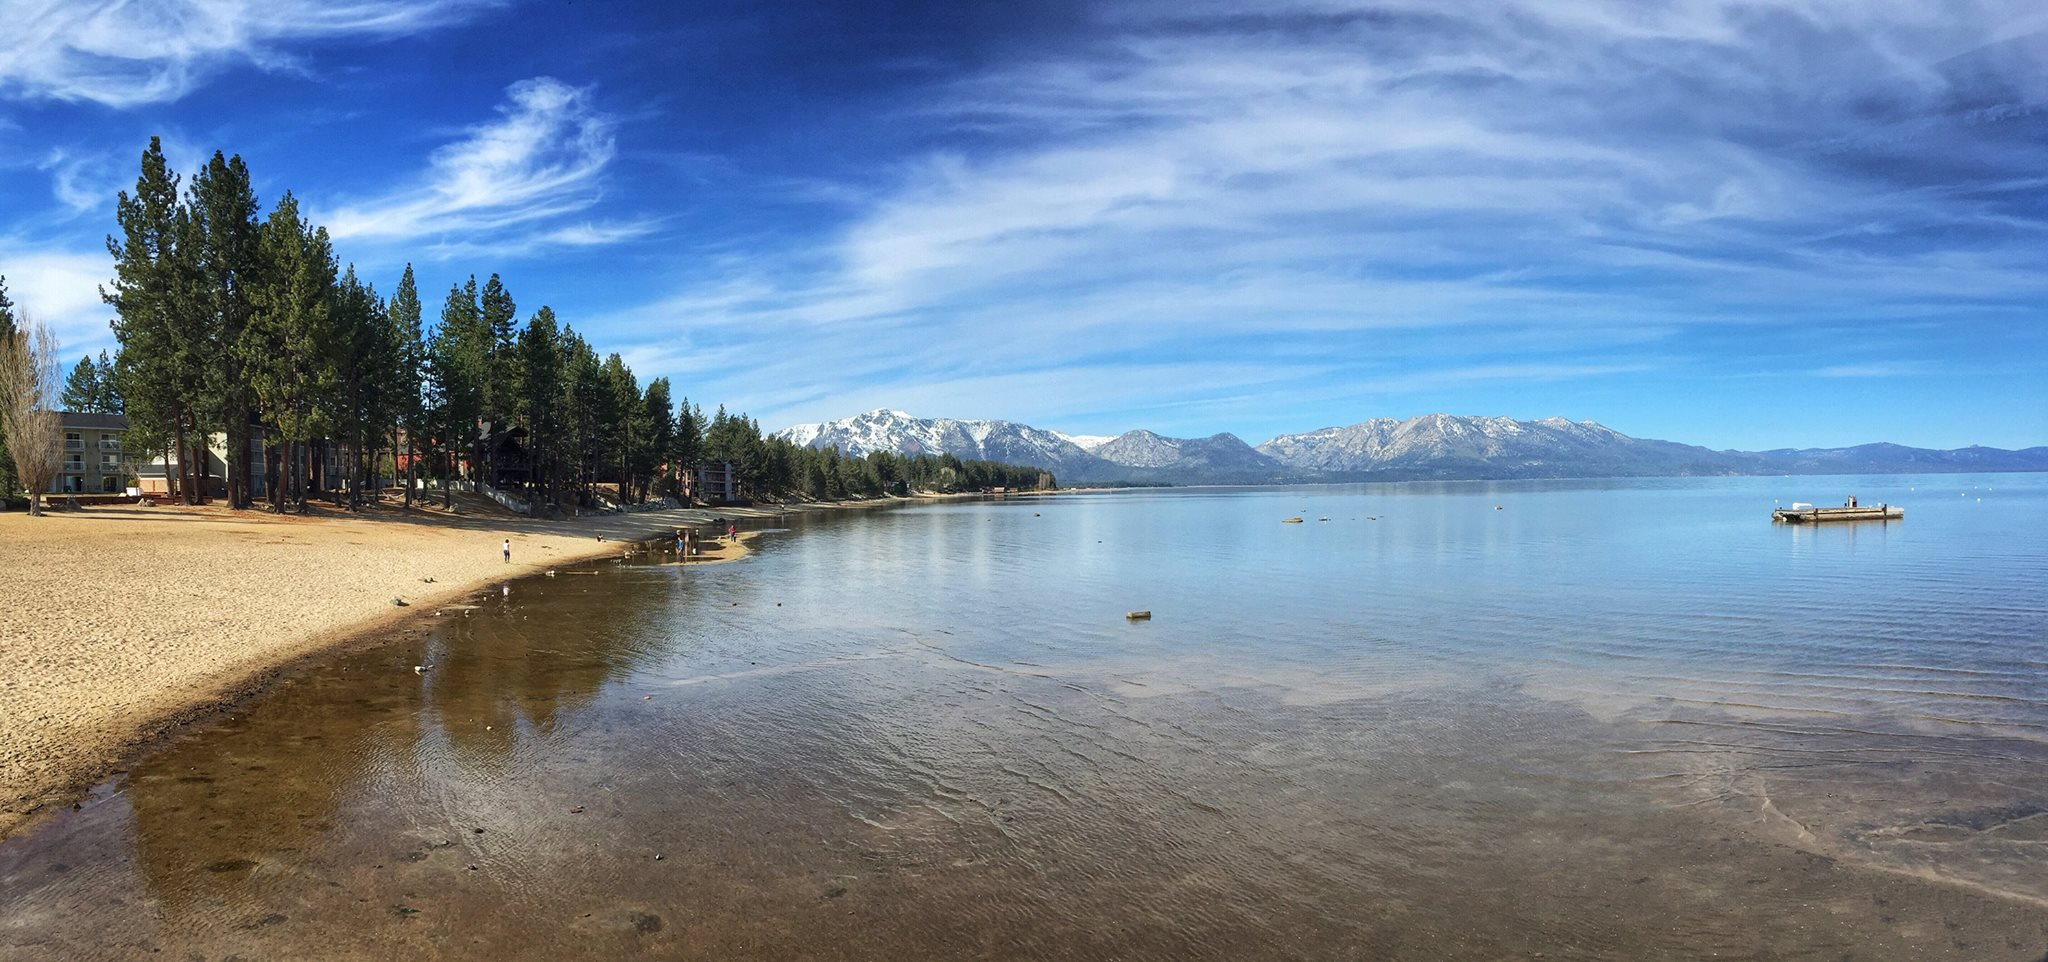 Best Weekend West Coast Getaways: Lake Tahoe